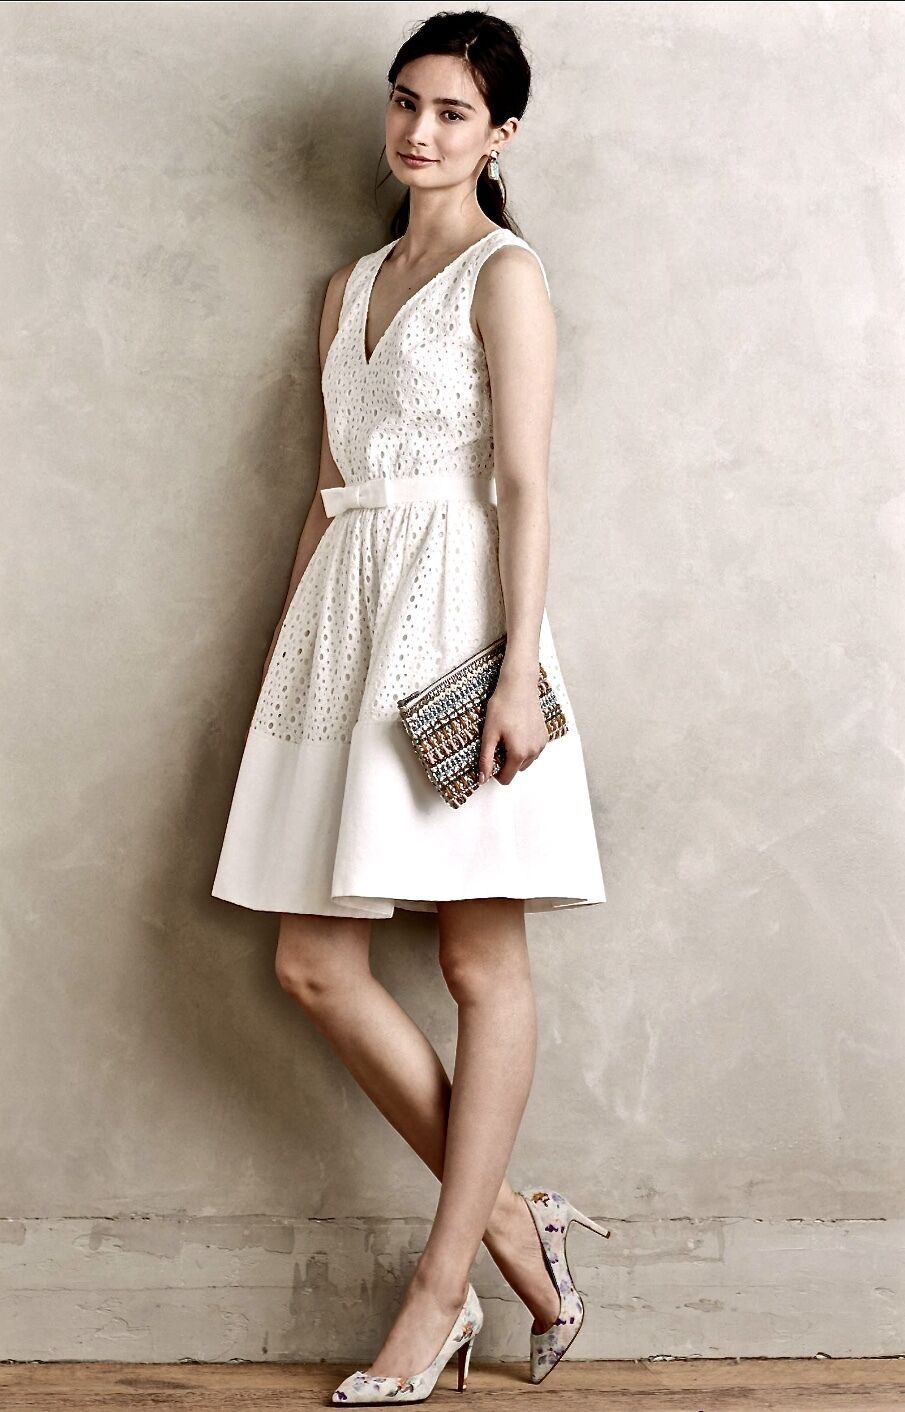 NEW Erin Featherston white Eyelet Lace Bought at Anthropologie Formal Dress 8